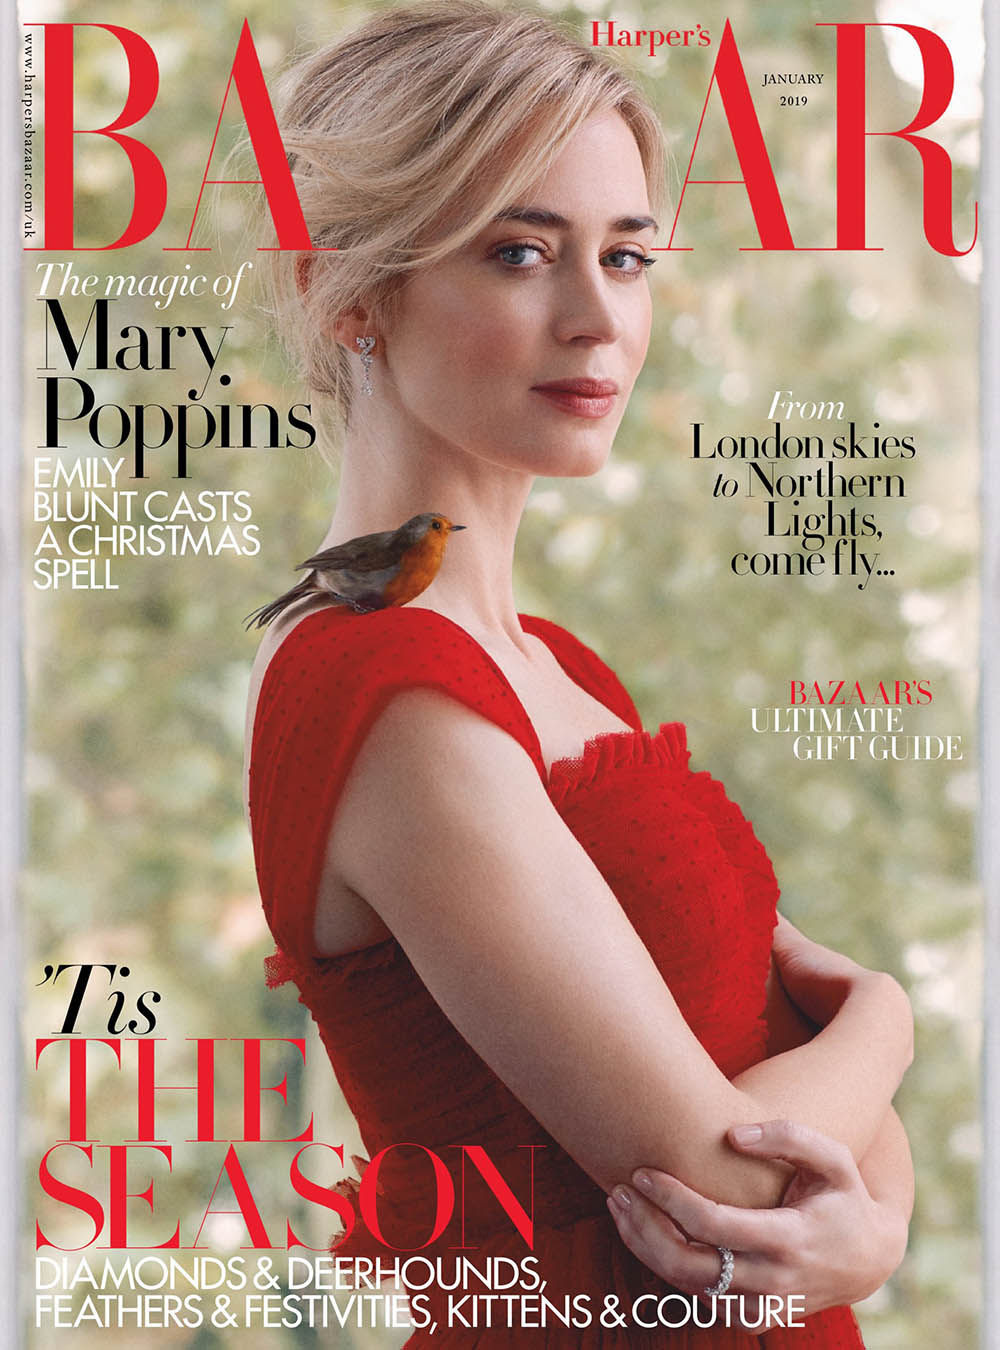 Emily Blunt covers Harper's Bazaar UK January 2019 by Richard Phibbs